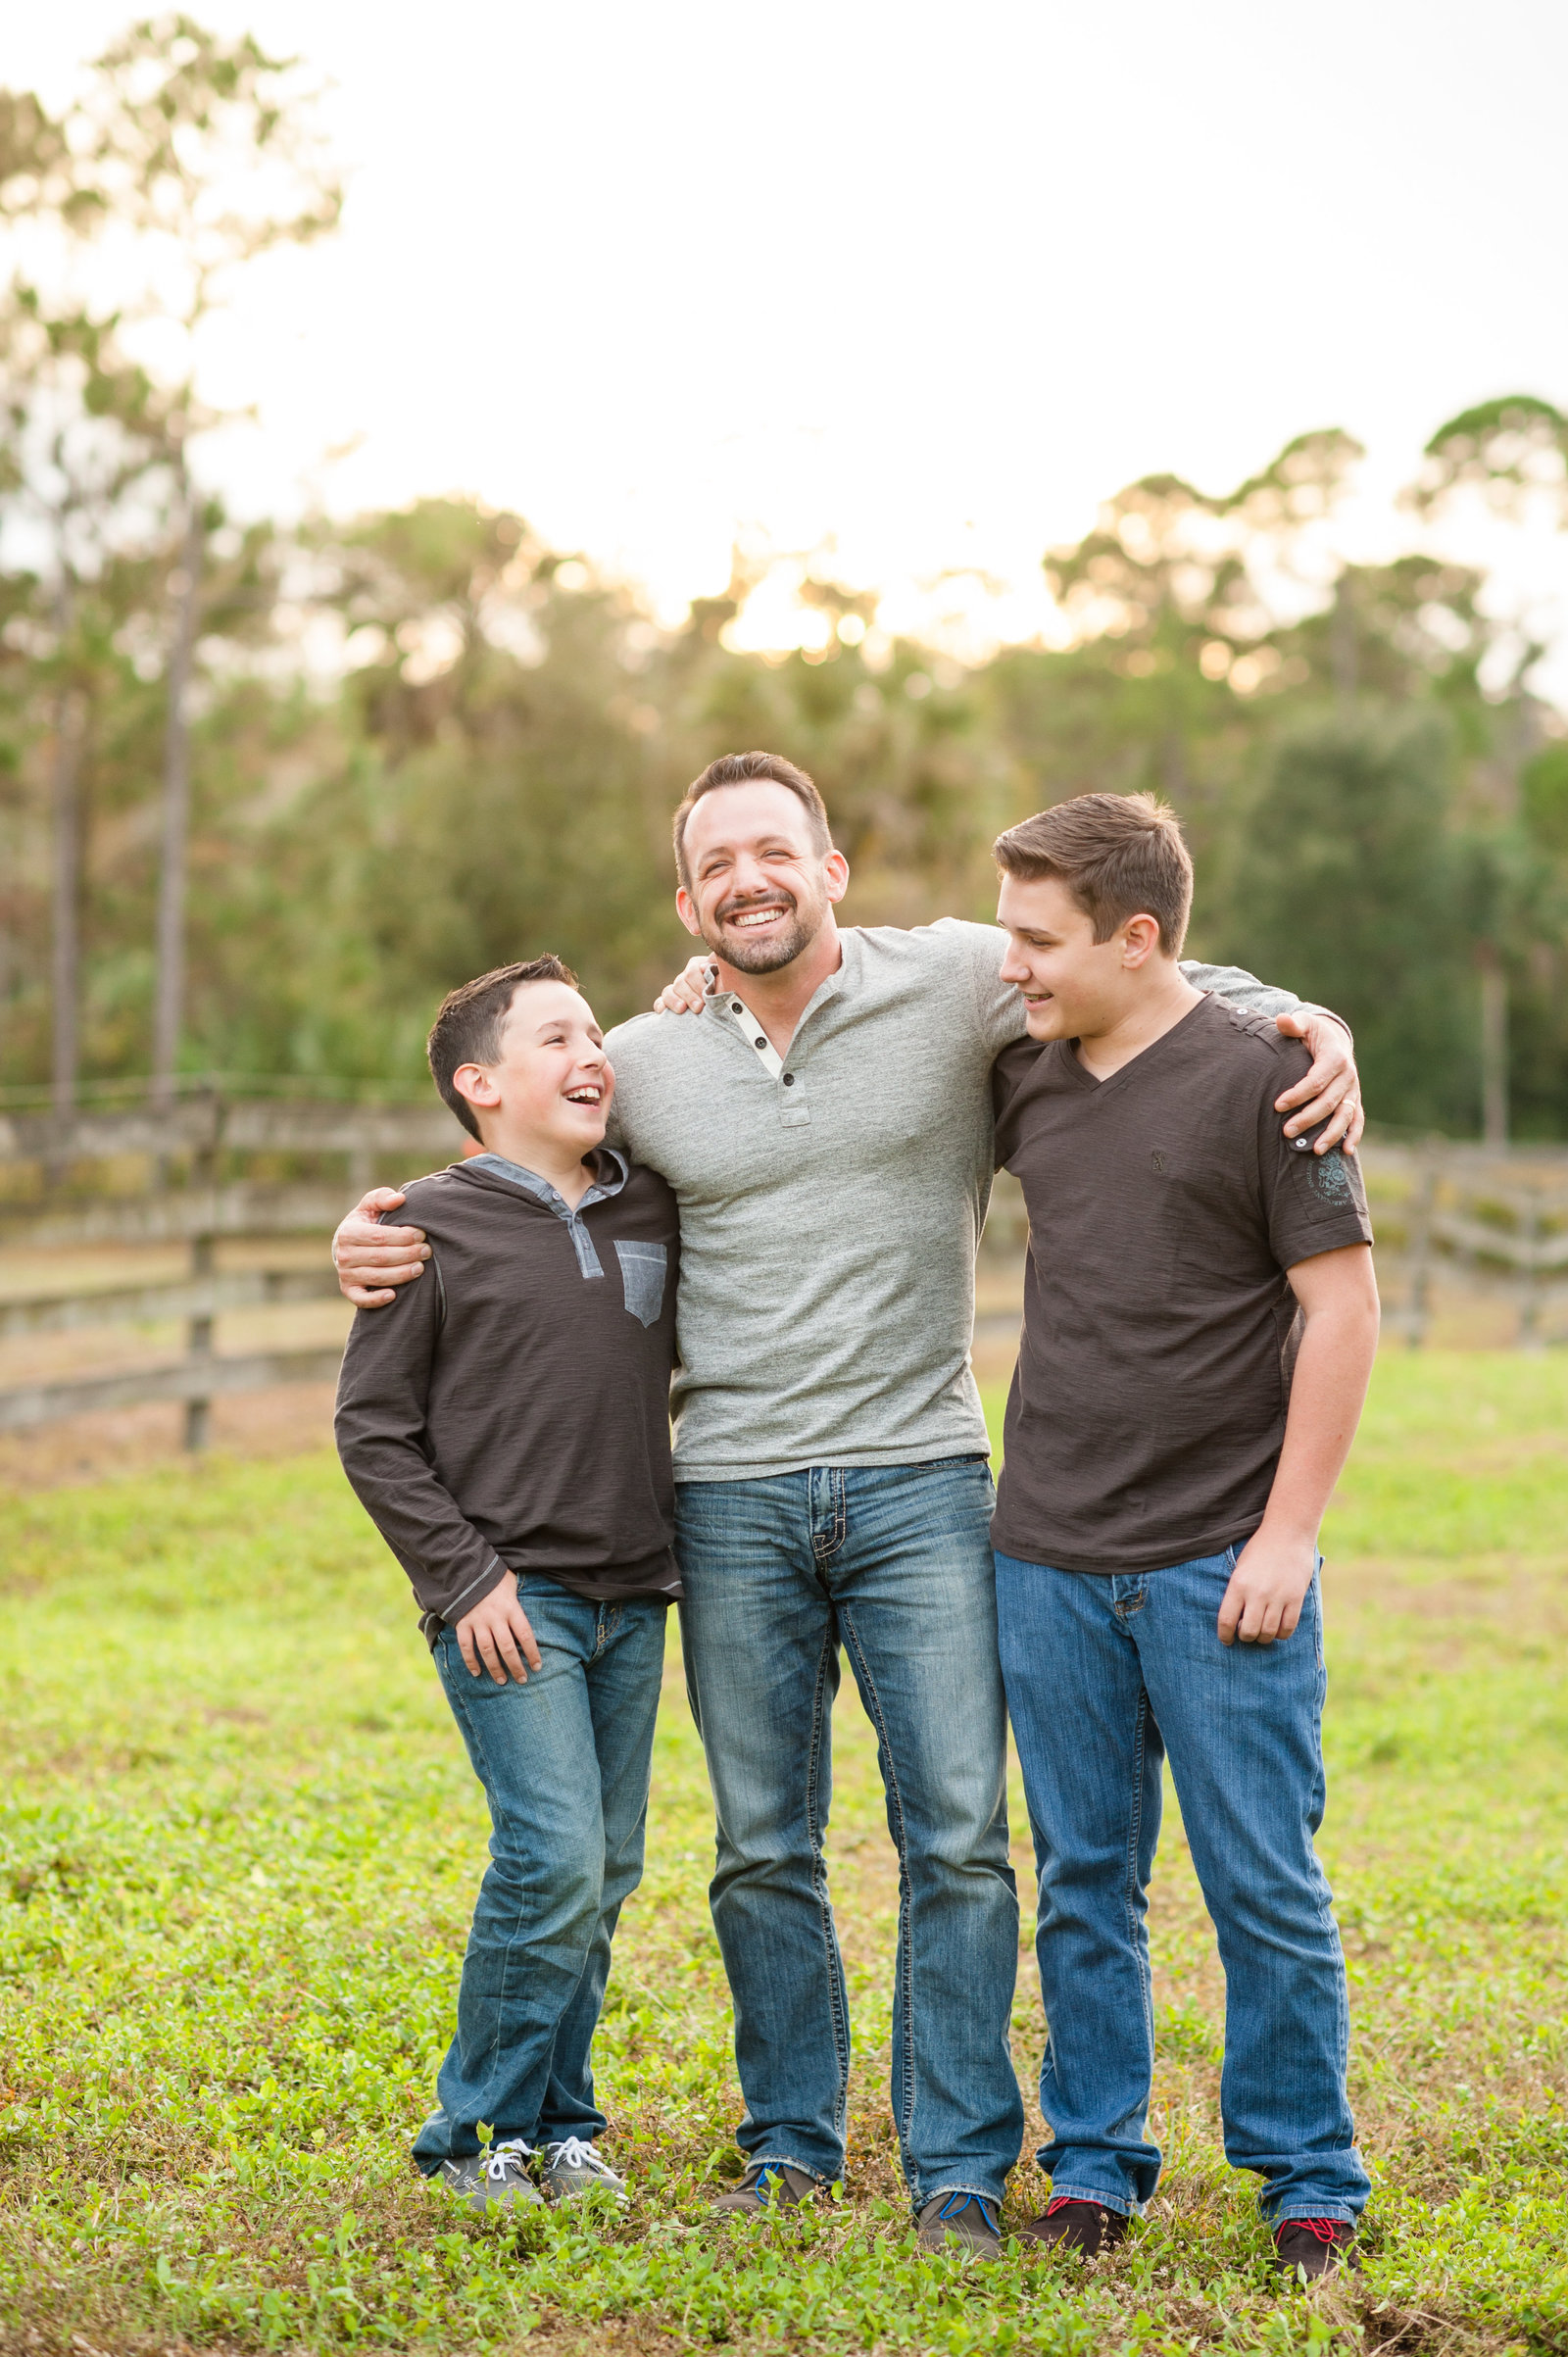 Ormond Beach lifestyle family portrait photography